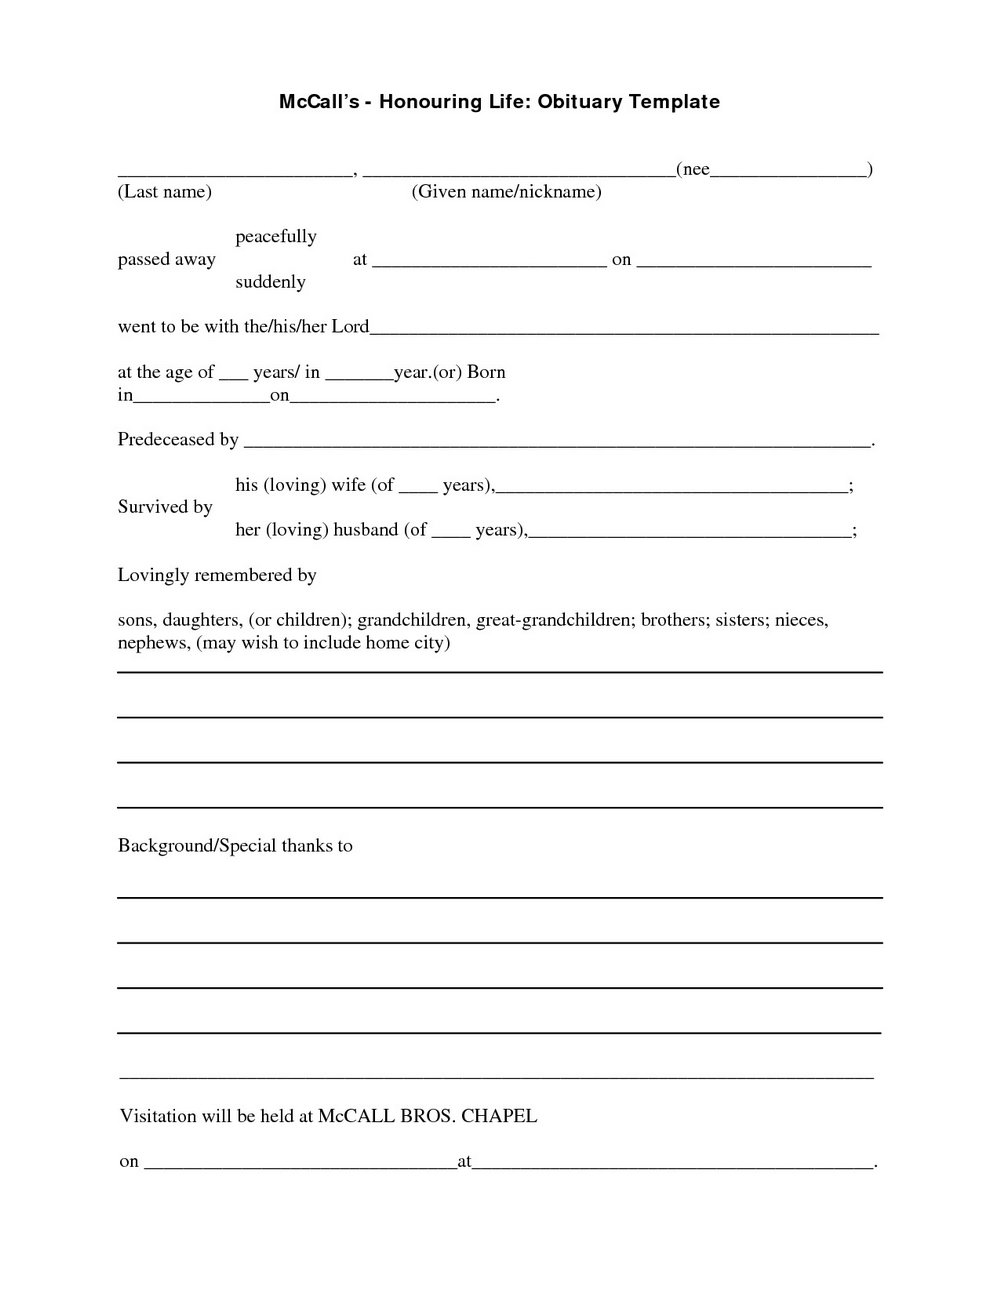 Template For Obituary Microsoft Word